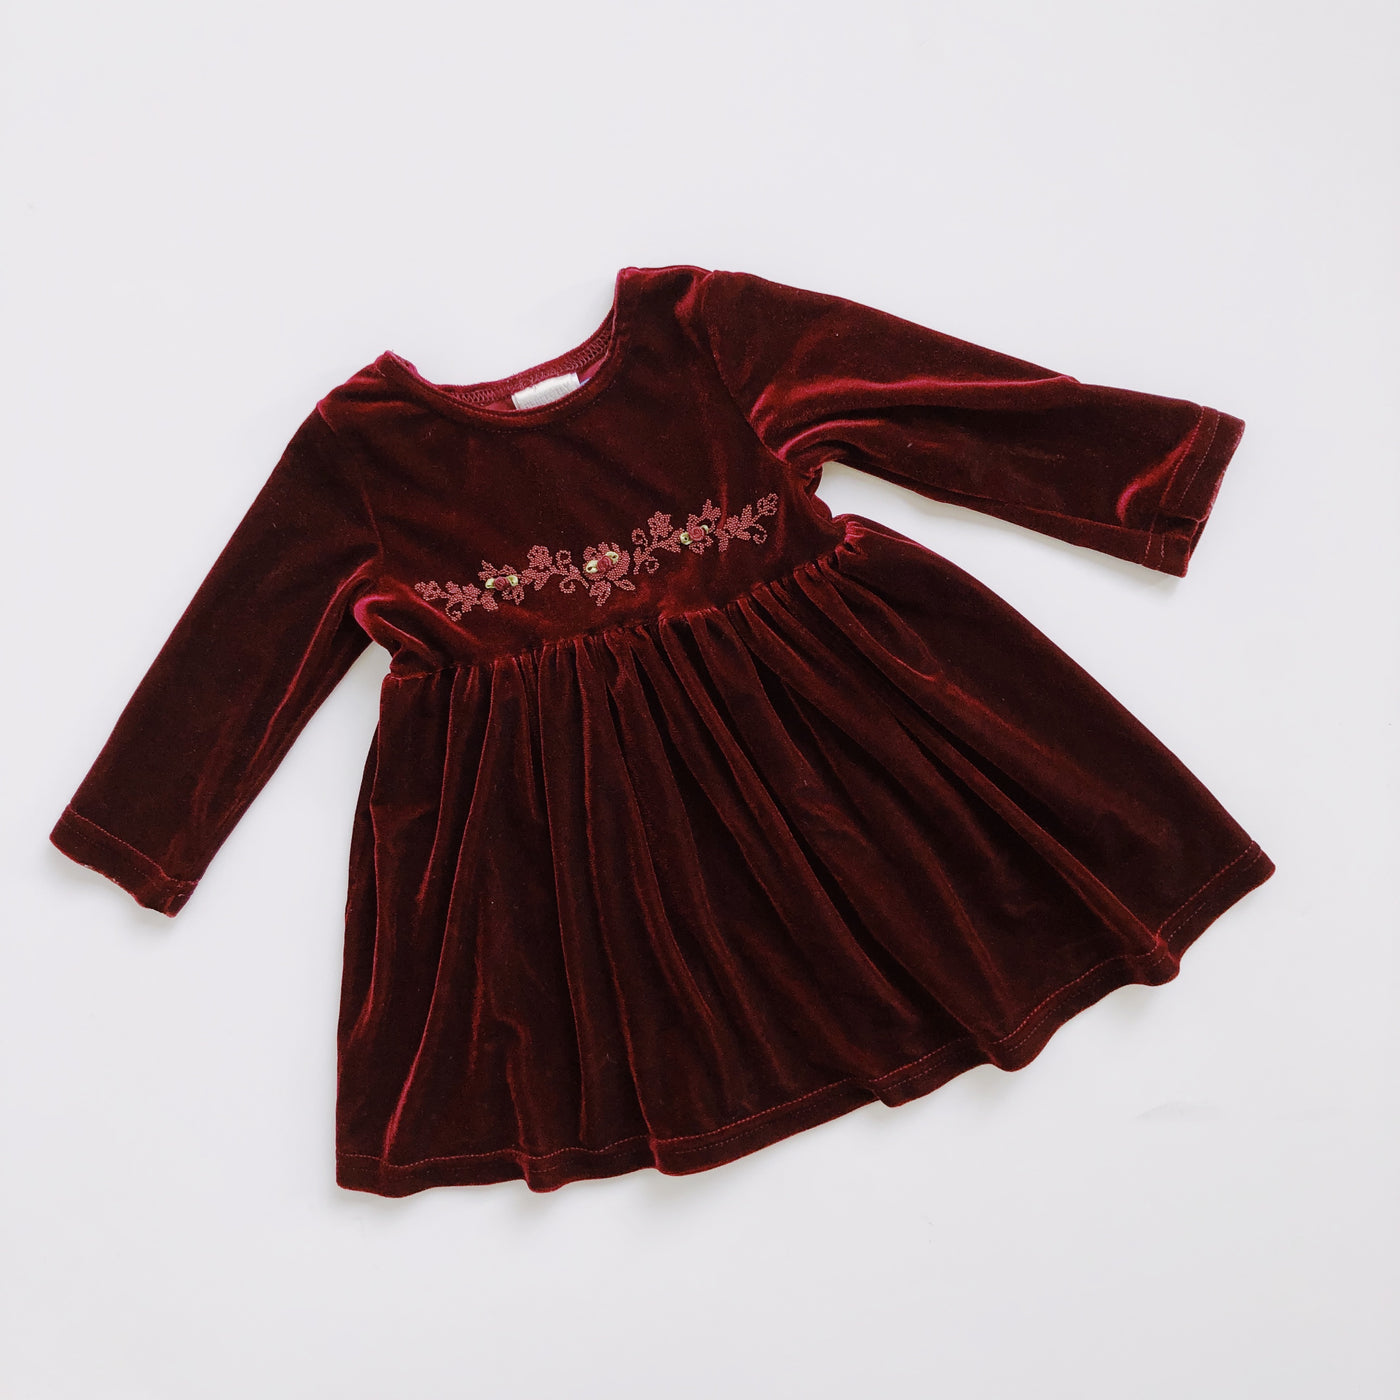 Vintage Perfectly Dressed Maroon Velvet Party Dress / Size 2T